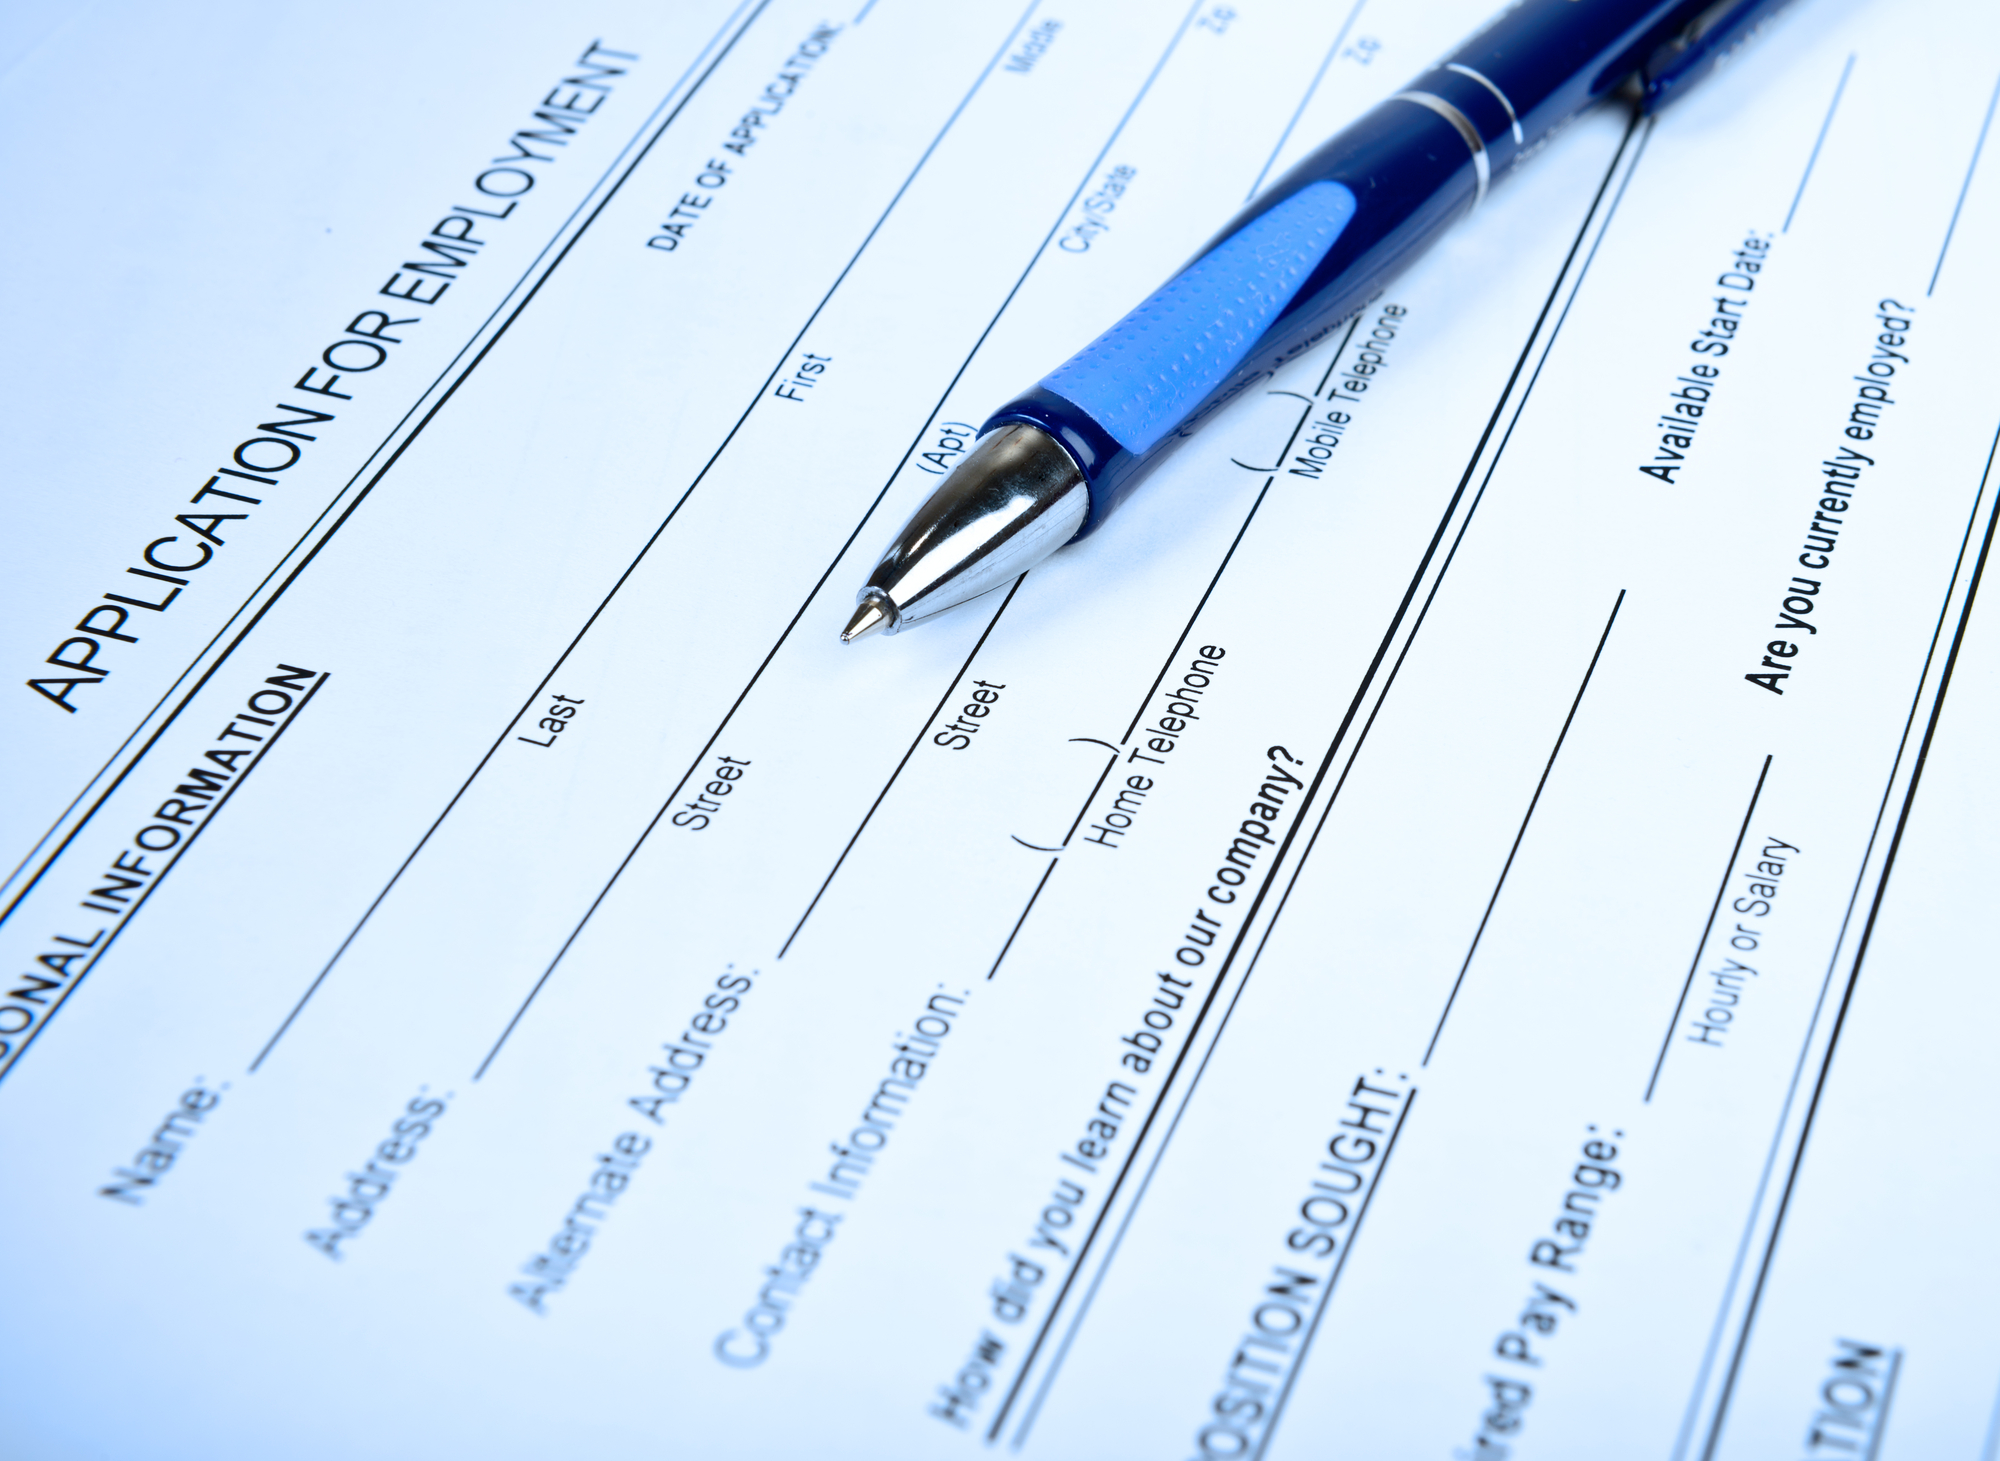 Close-up of an employment application, with a blue ballpoint pen resting on top of it.